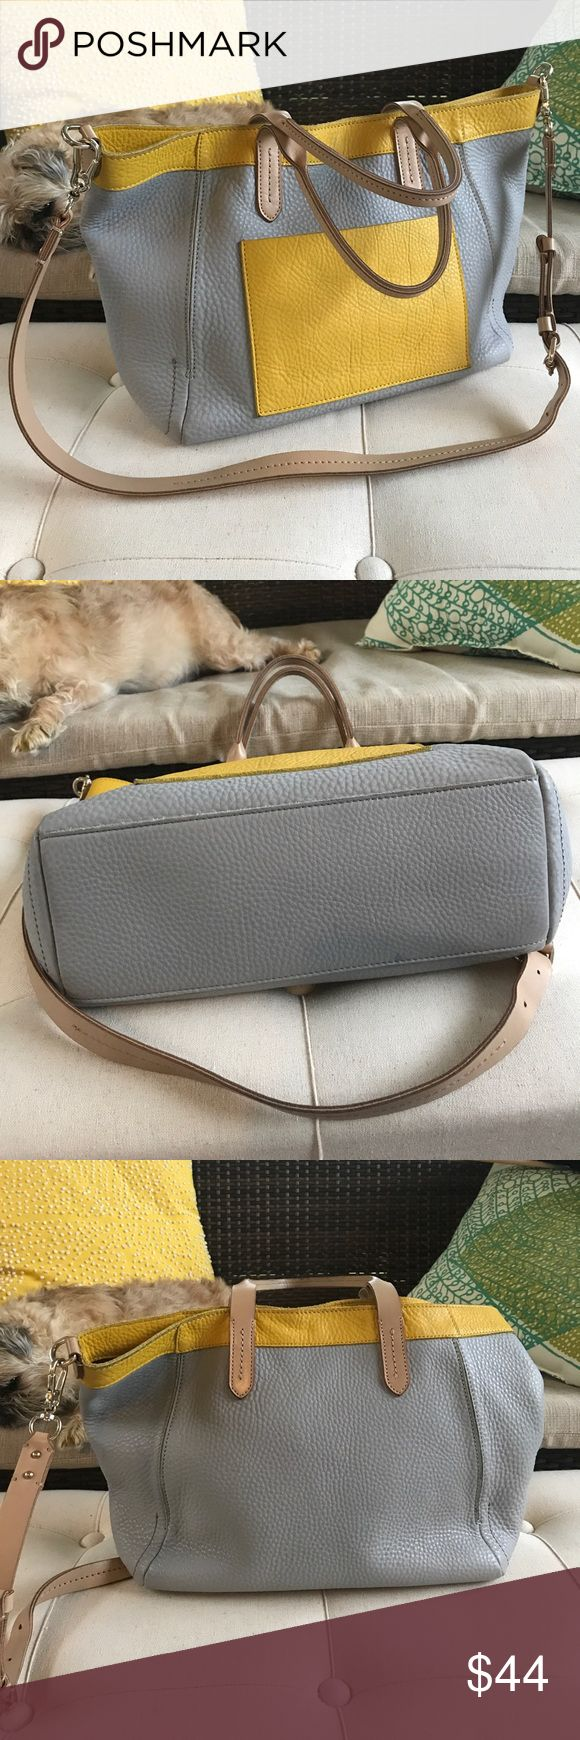 """Cole Haan Tote or Crossbody Leather Bag Cole Haan leather tote in gray and yellow gold is nice for work or play. Leather is a soft pebble. Gold hardware. 16""""W x 9.5H x 4.5""""D. Magnetic closure and outside pocket. Sample Sale, hence the writing inside. Great for summer and into fall! (Sorry to mention fall right now.) Quality Cole Haan. I have been trying to take pics when the dog decided she needed that space! Cole Haan Bags Totes"""